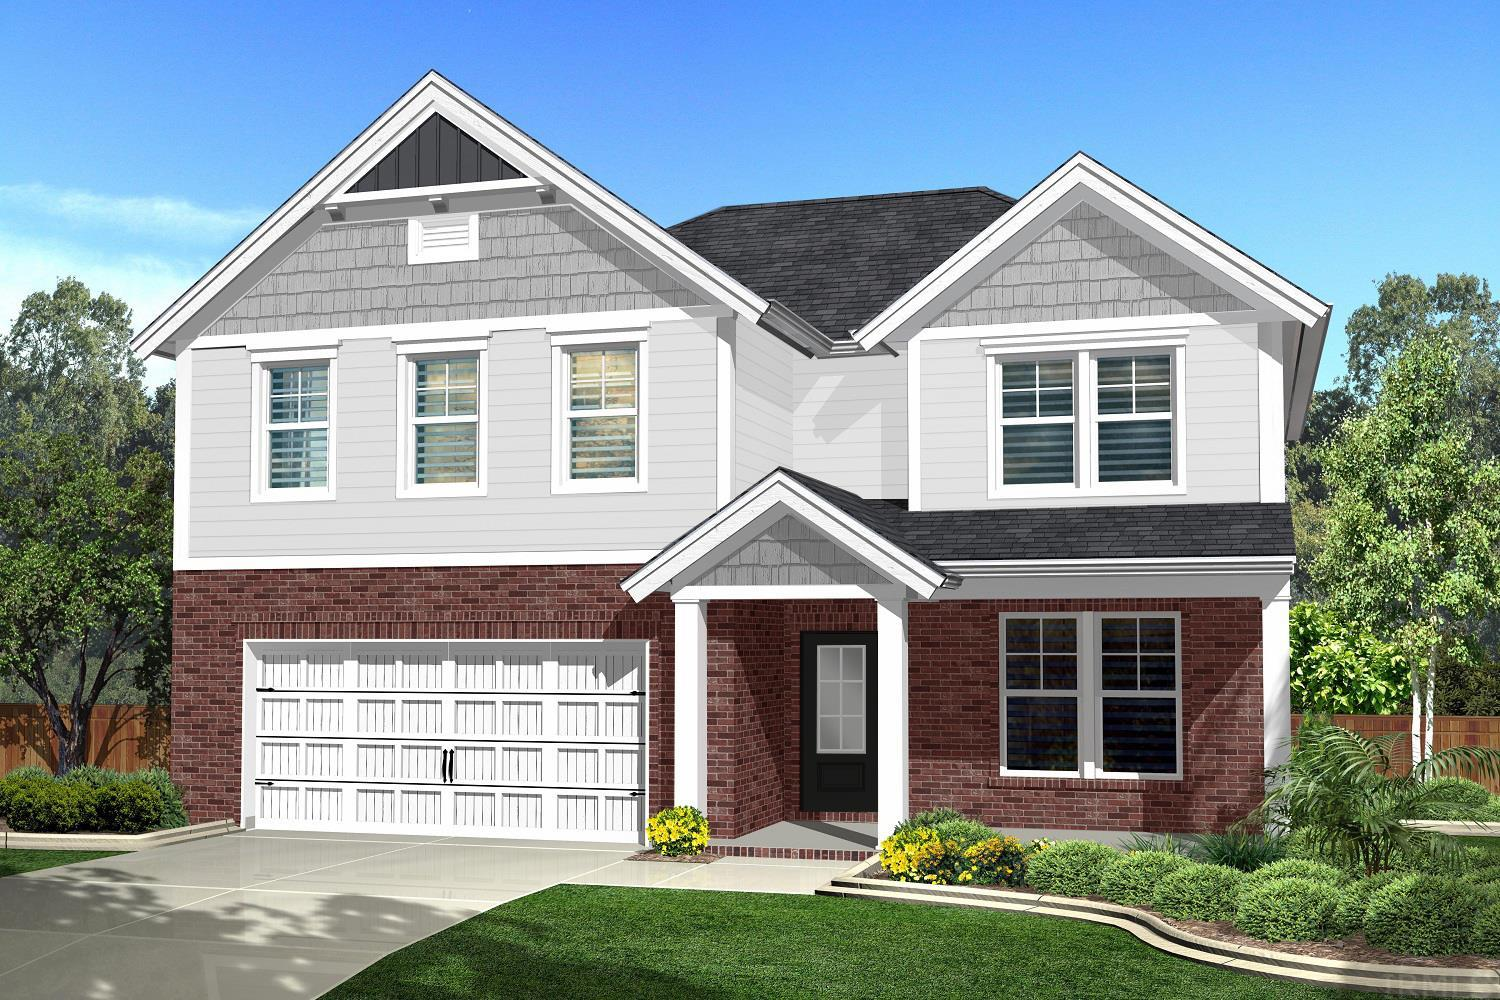 House for Sale, Residential Properties in Indiana | Myers Trust